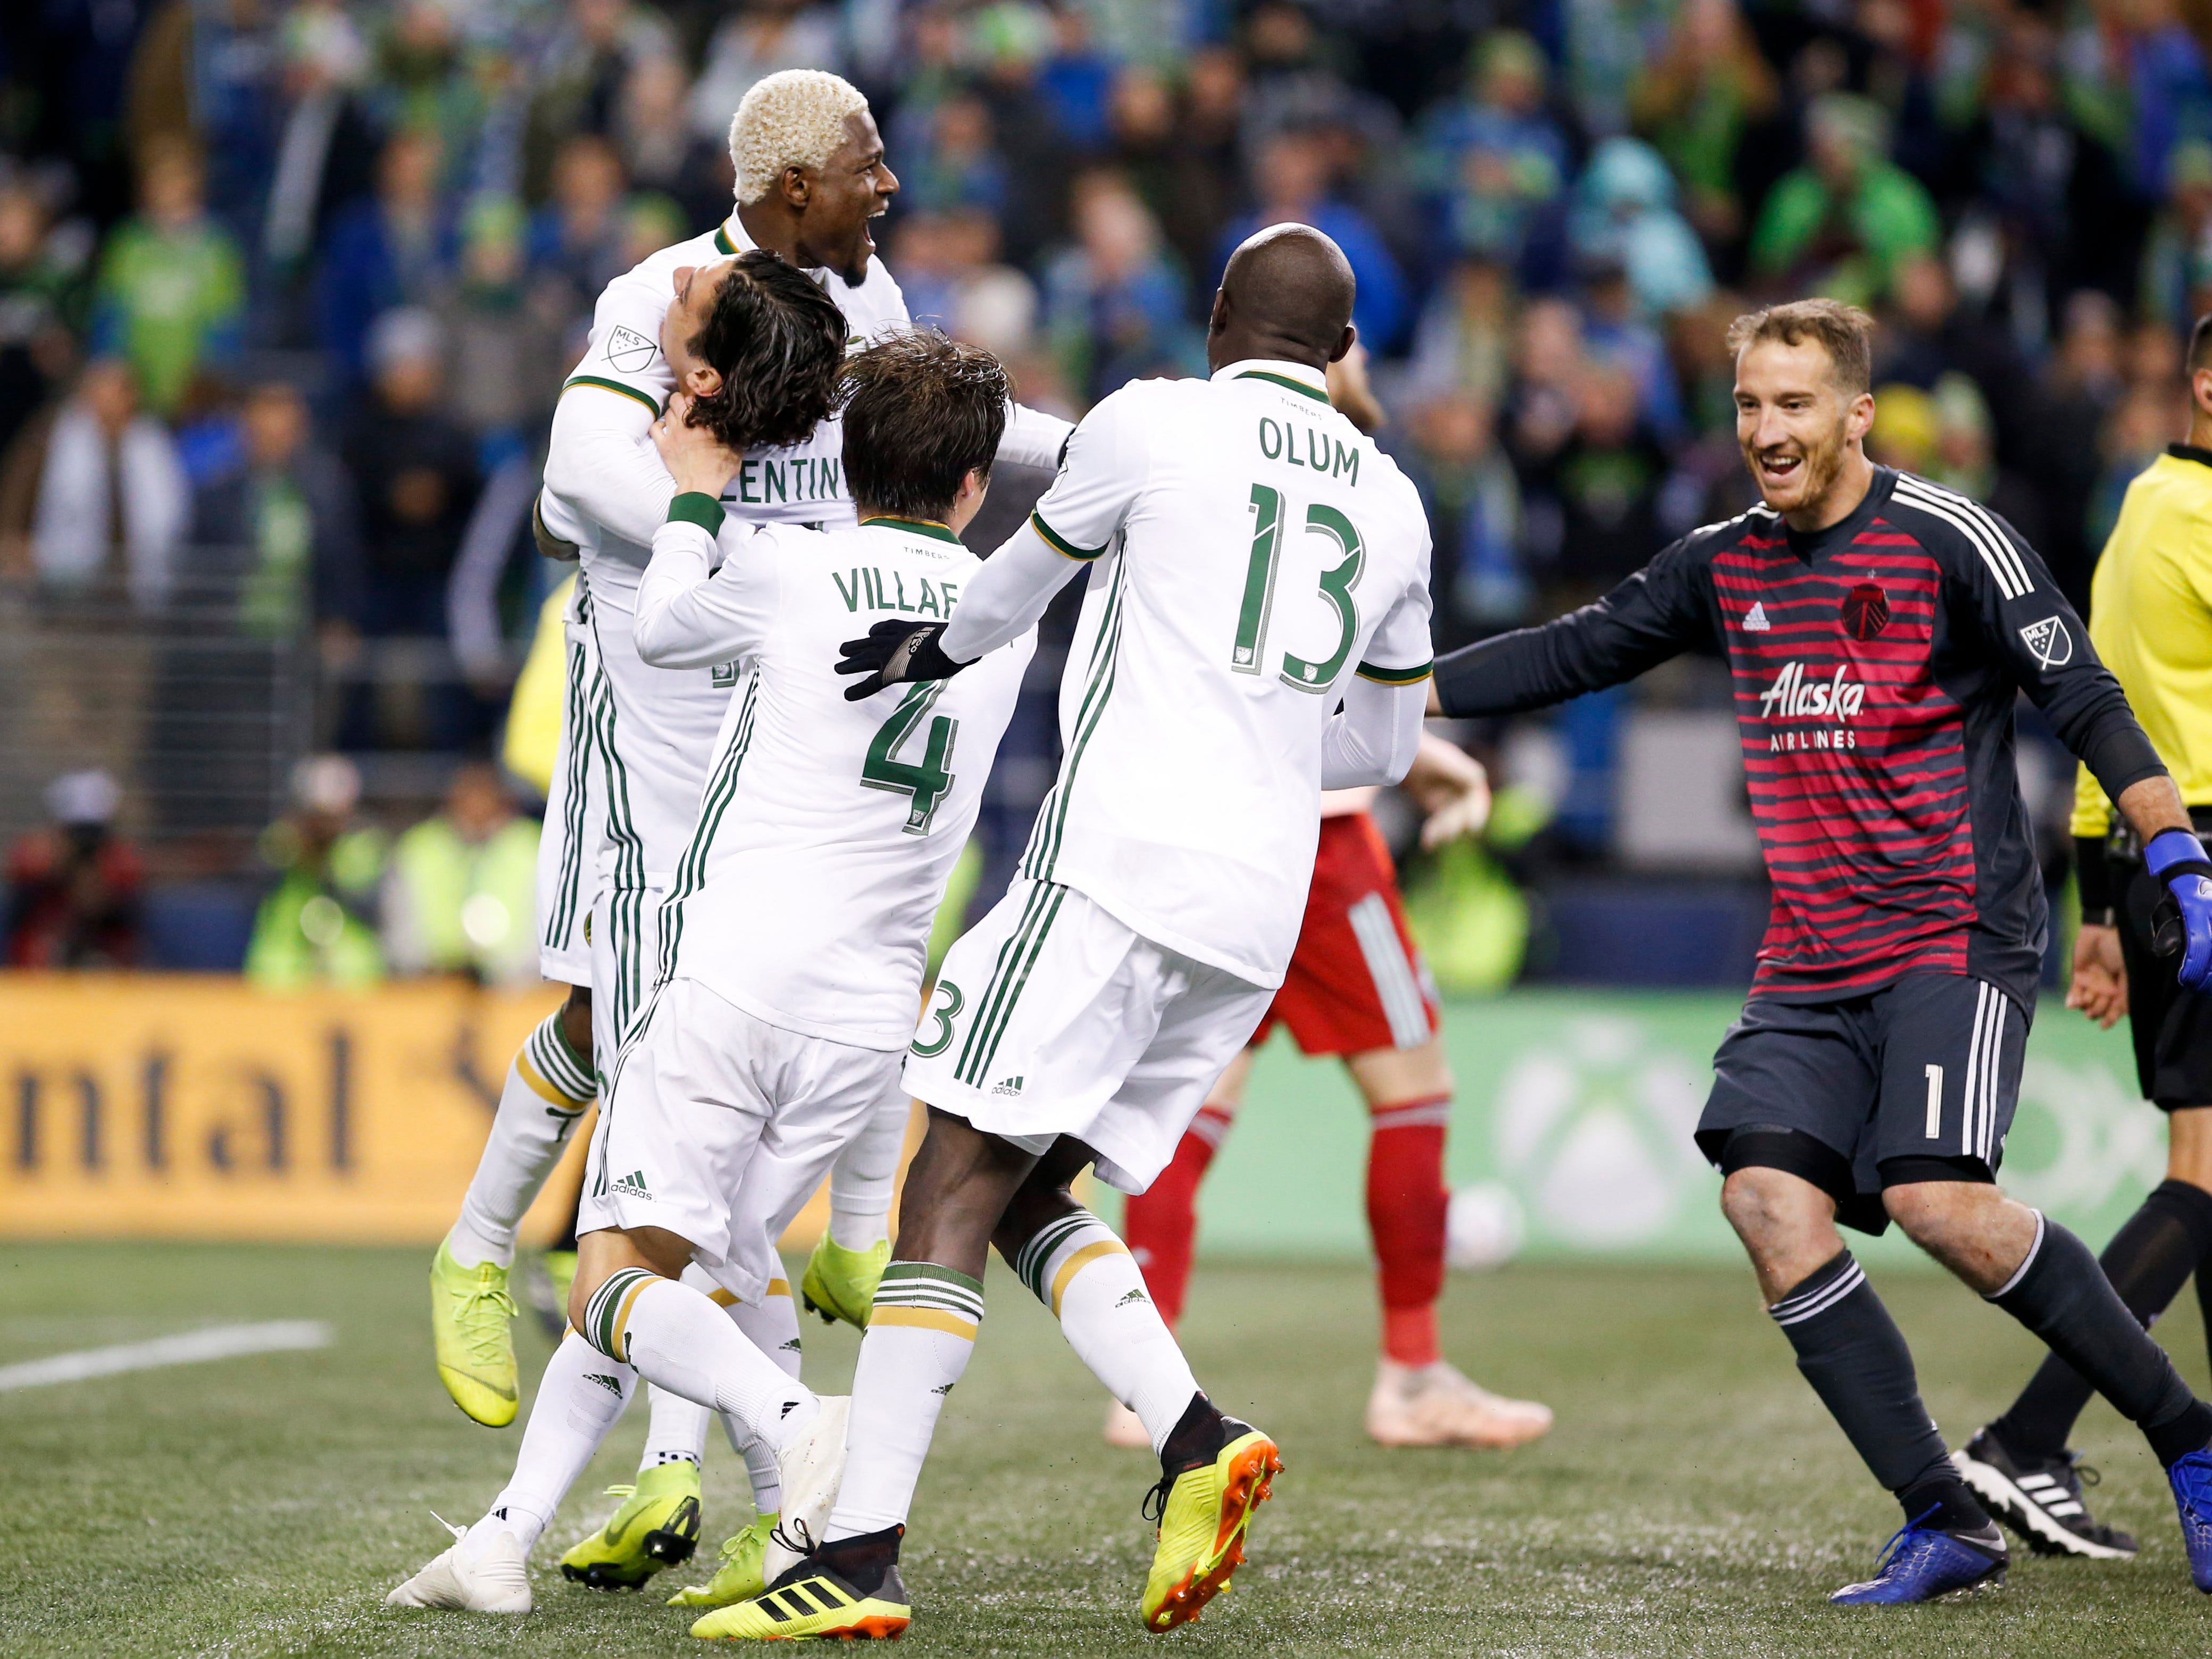 Portland Timbers forward Dairon Asprilla (left) celebrates with teammates including goalkeeper Jeff Attinella after winning a penalty shootout against the Seattle Sounders FC at CenturyLink Field.